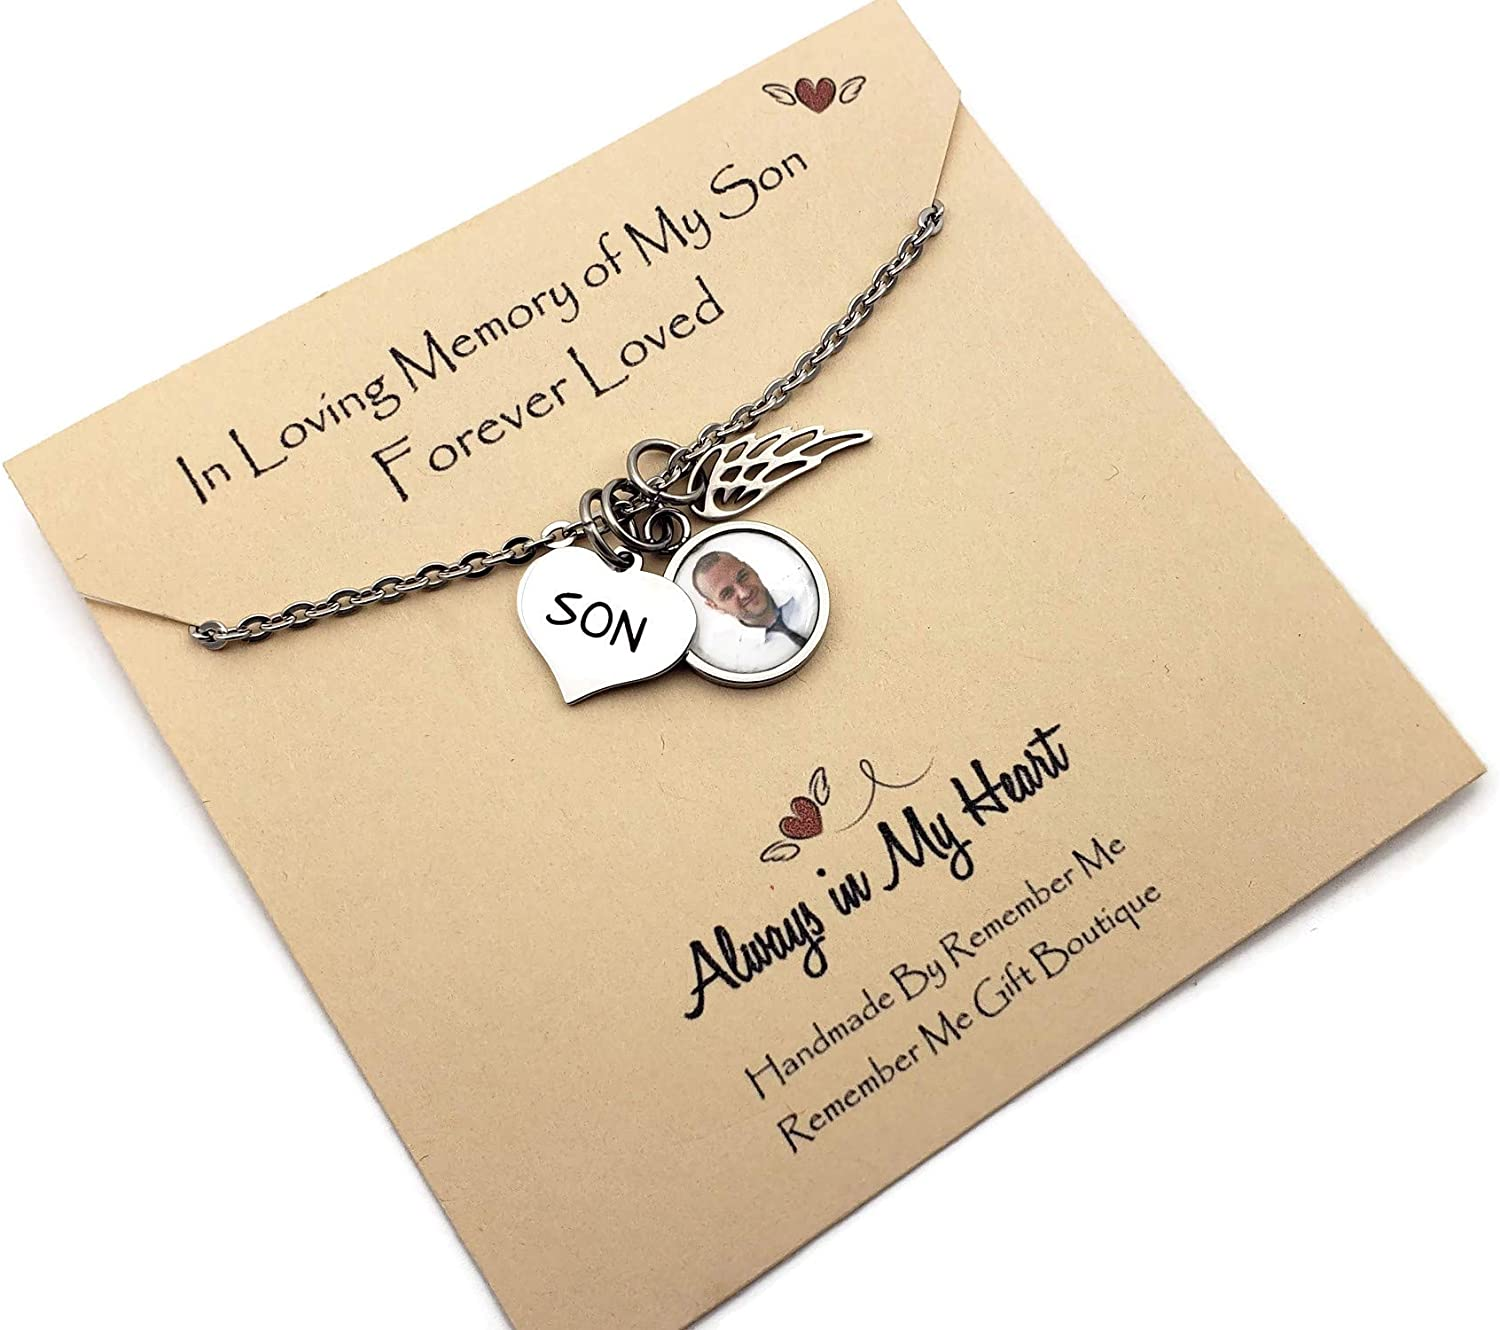 Loss of Son Memorial Gifts, In Memory of Loved One, Bereavement Memorial Jewelry, Funeral Gift Instead of Flowers, In Loving Memory Memorial Necklace, Photo Picture Pendant, Angel Wing Charm